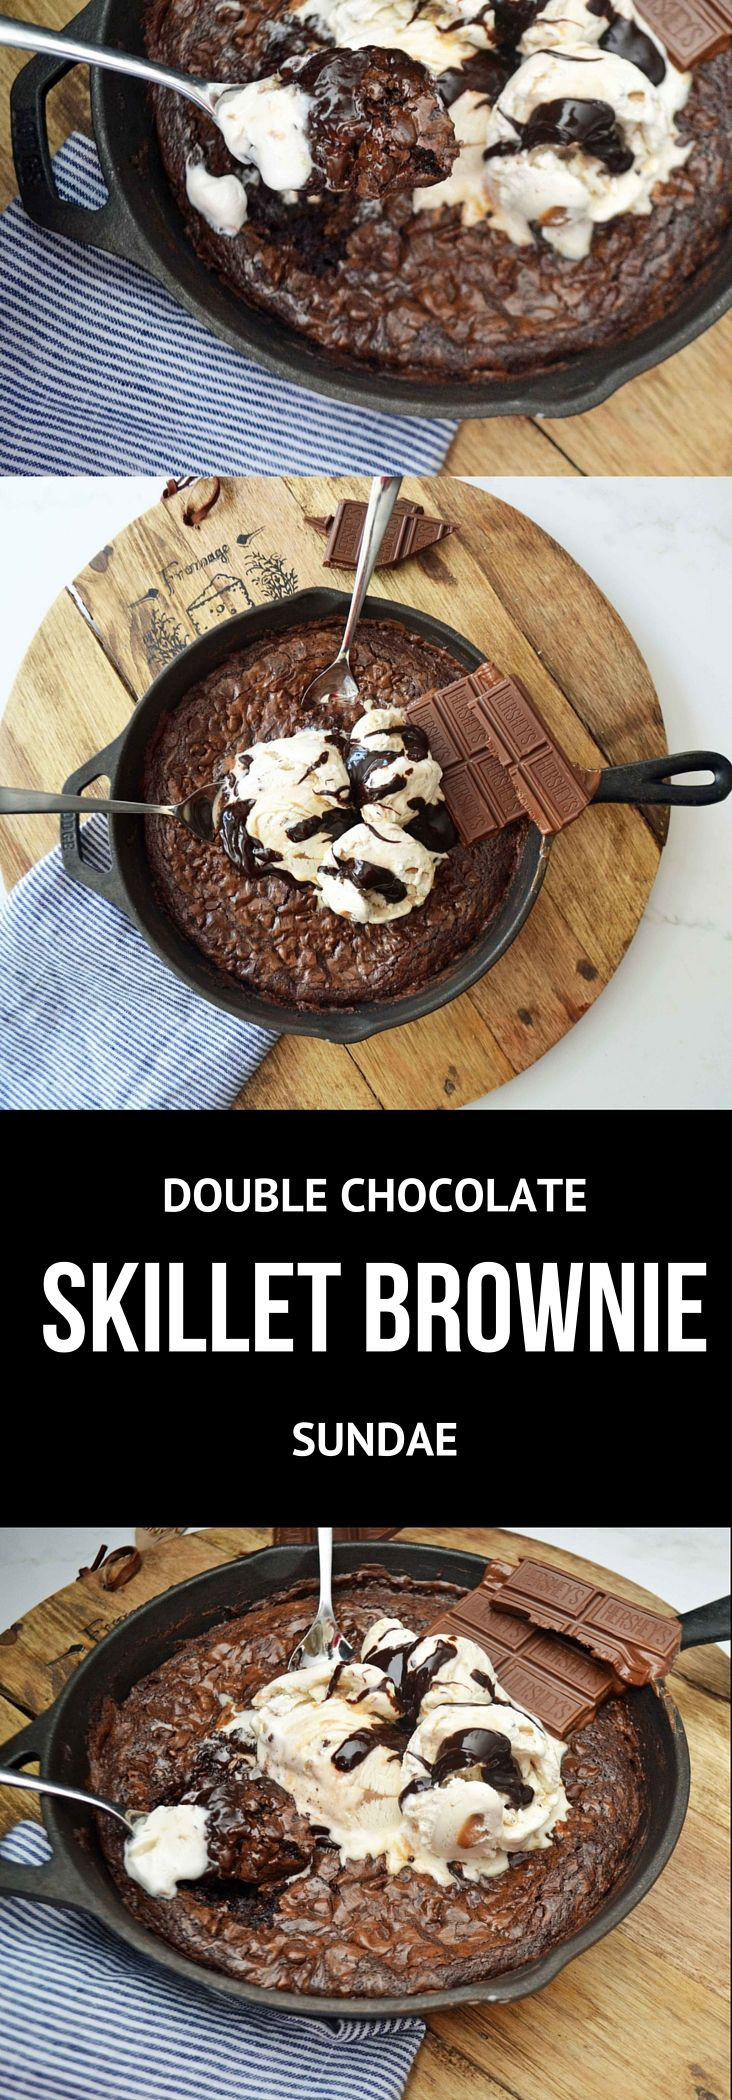 Rich, decadent double chocolate brownie baked in a cast iron skillet, topped with salted caramel ice cream, drizzled with hot fudge, and garnished with chunks of chocolate. The perfect dessert for chocolate lovers! (double chocolate mousse recipe)